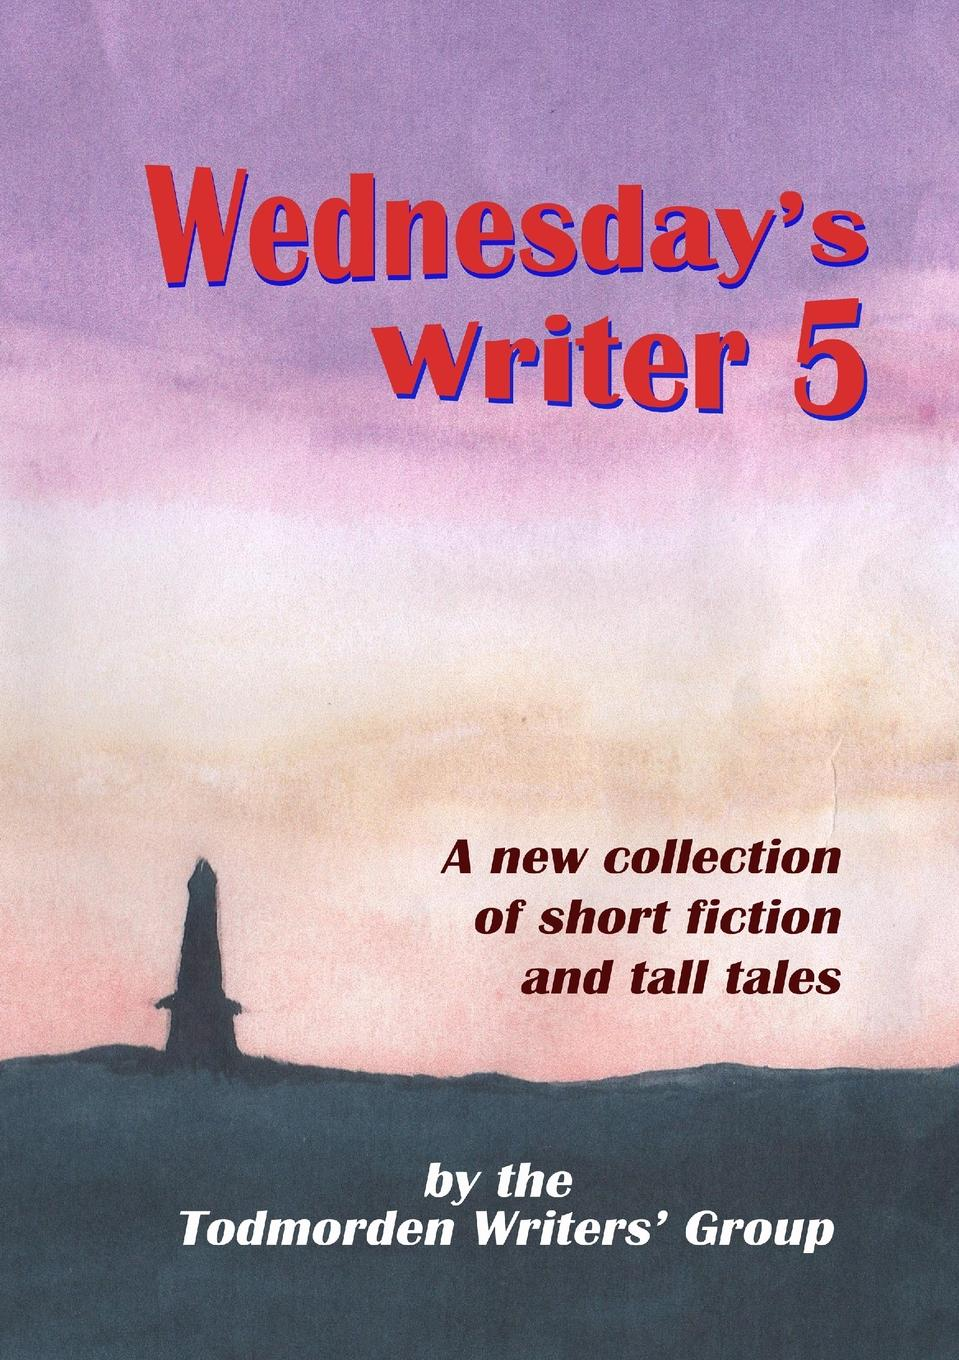 Todmorden Writers' Group Wednesday.s Writer 5